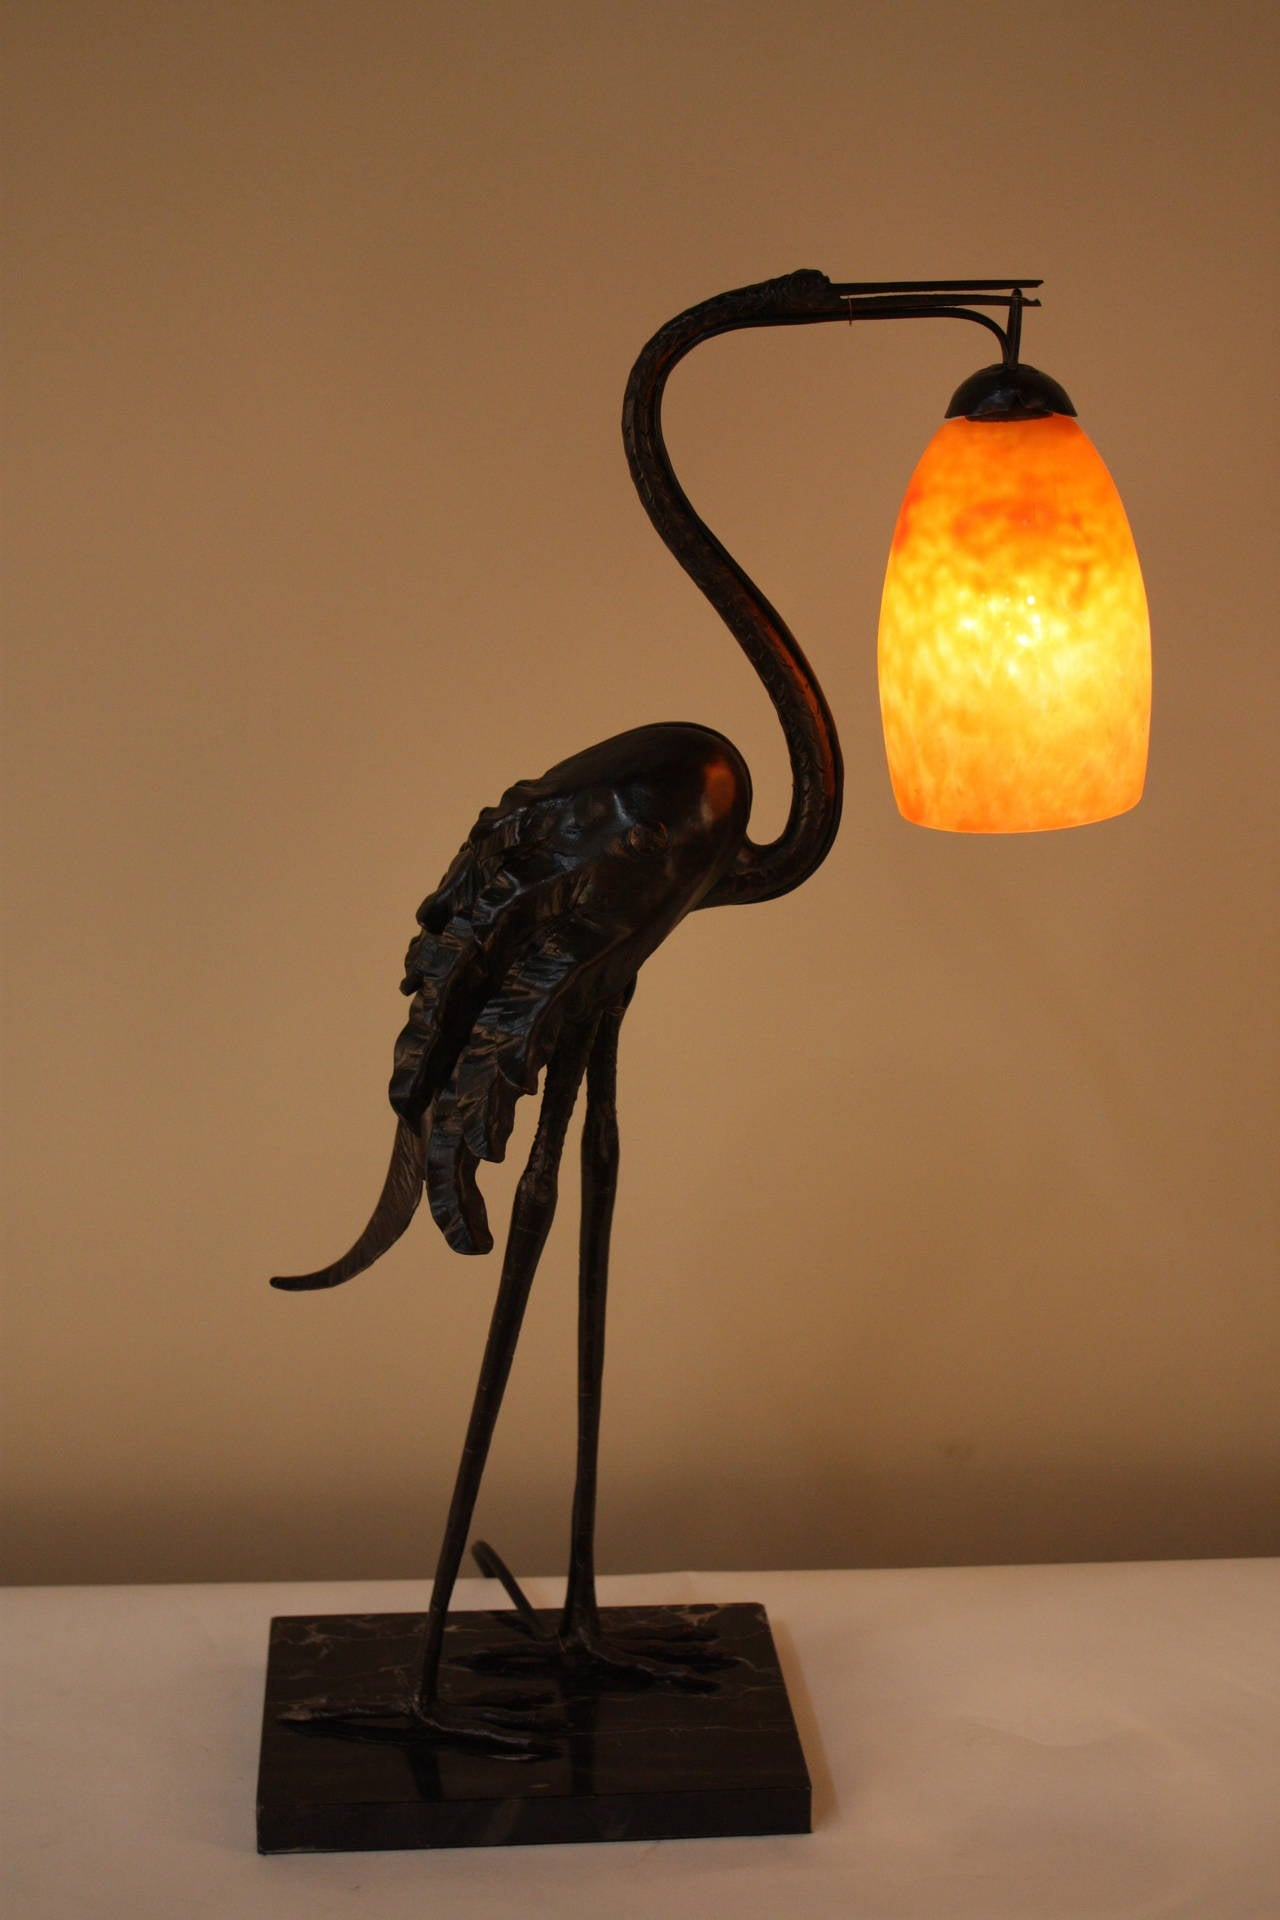 Handmade Wrought Iron Bird Lamp Daum Glass Shade Stdibs